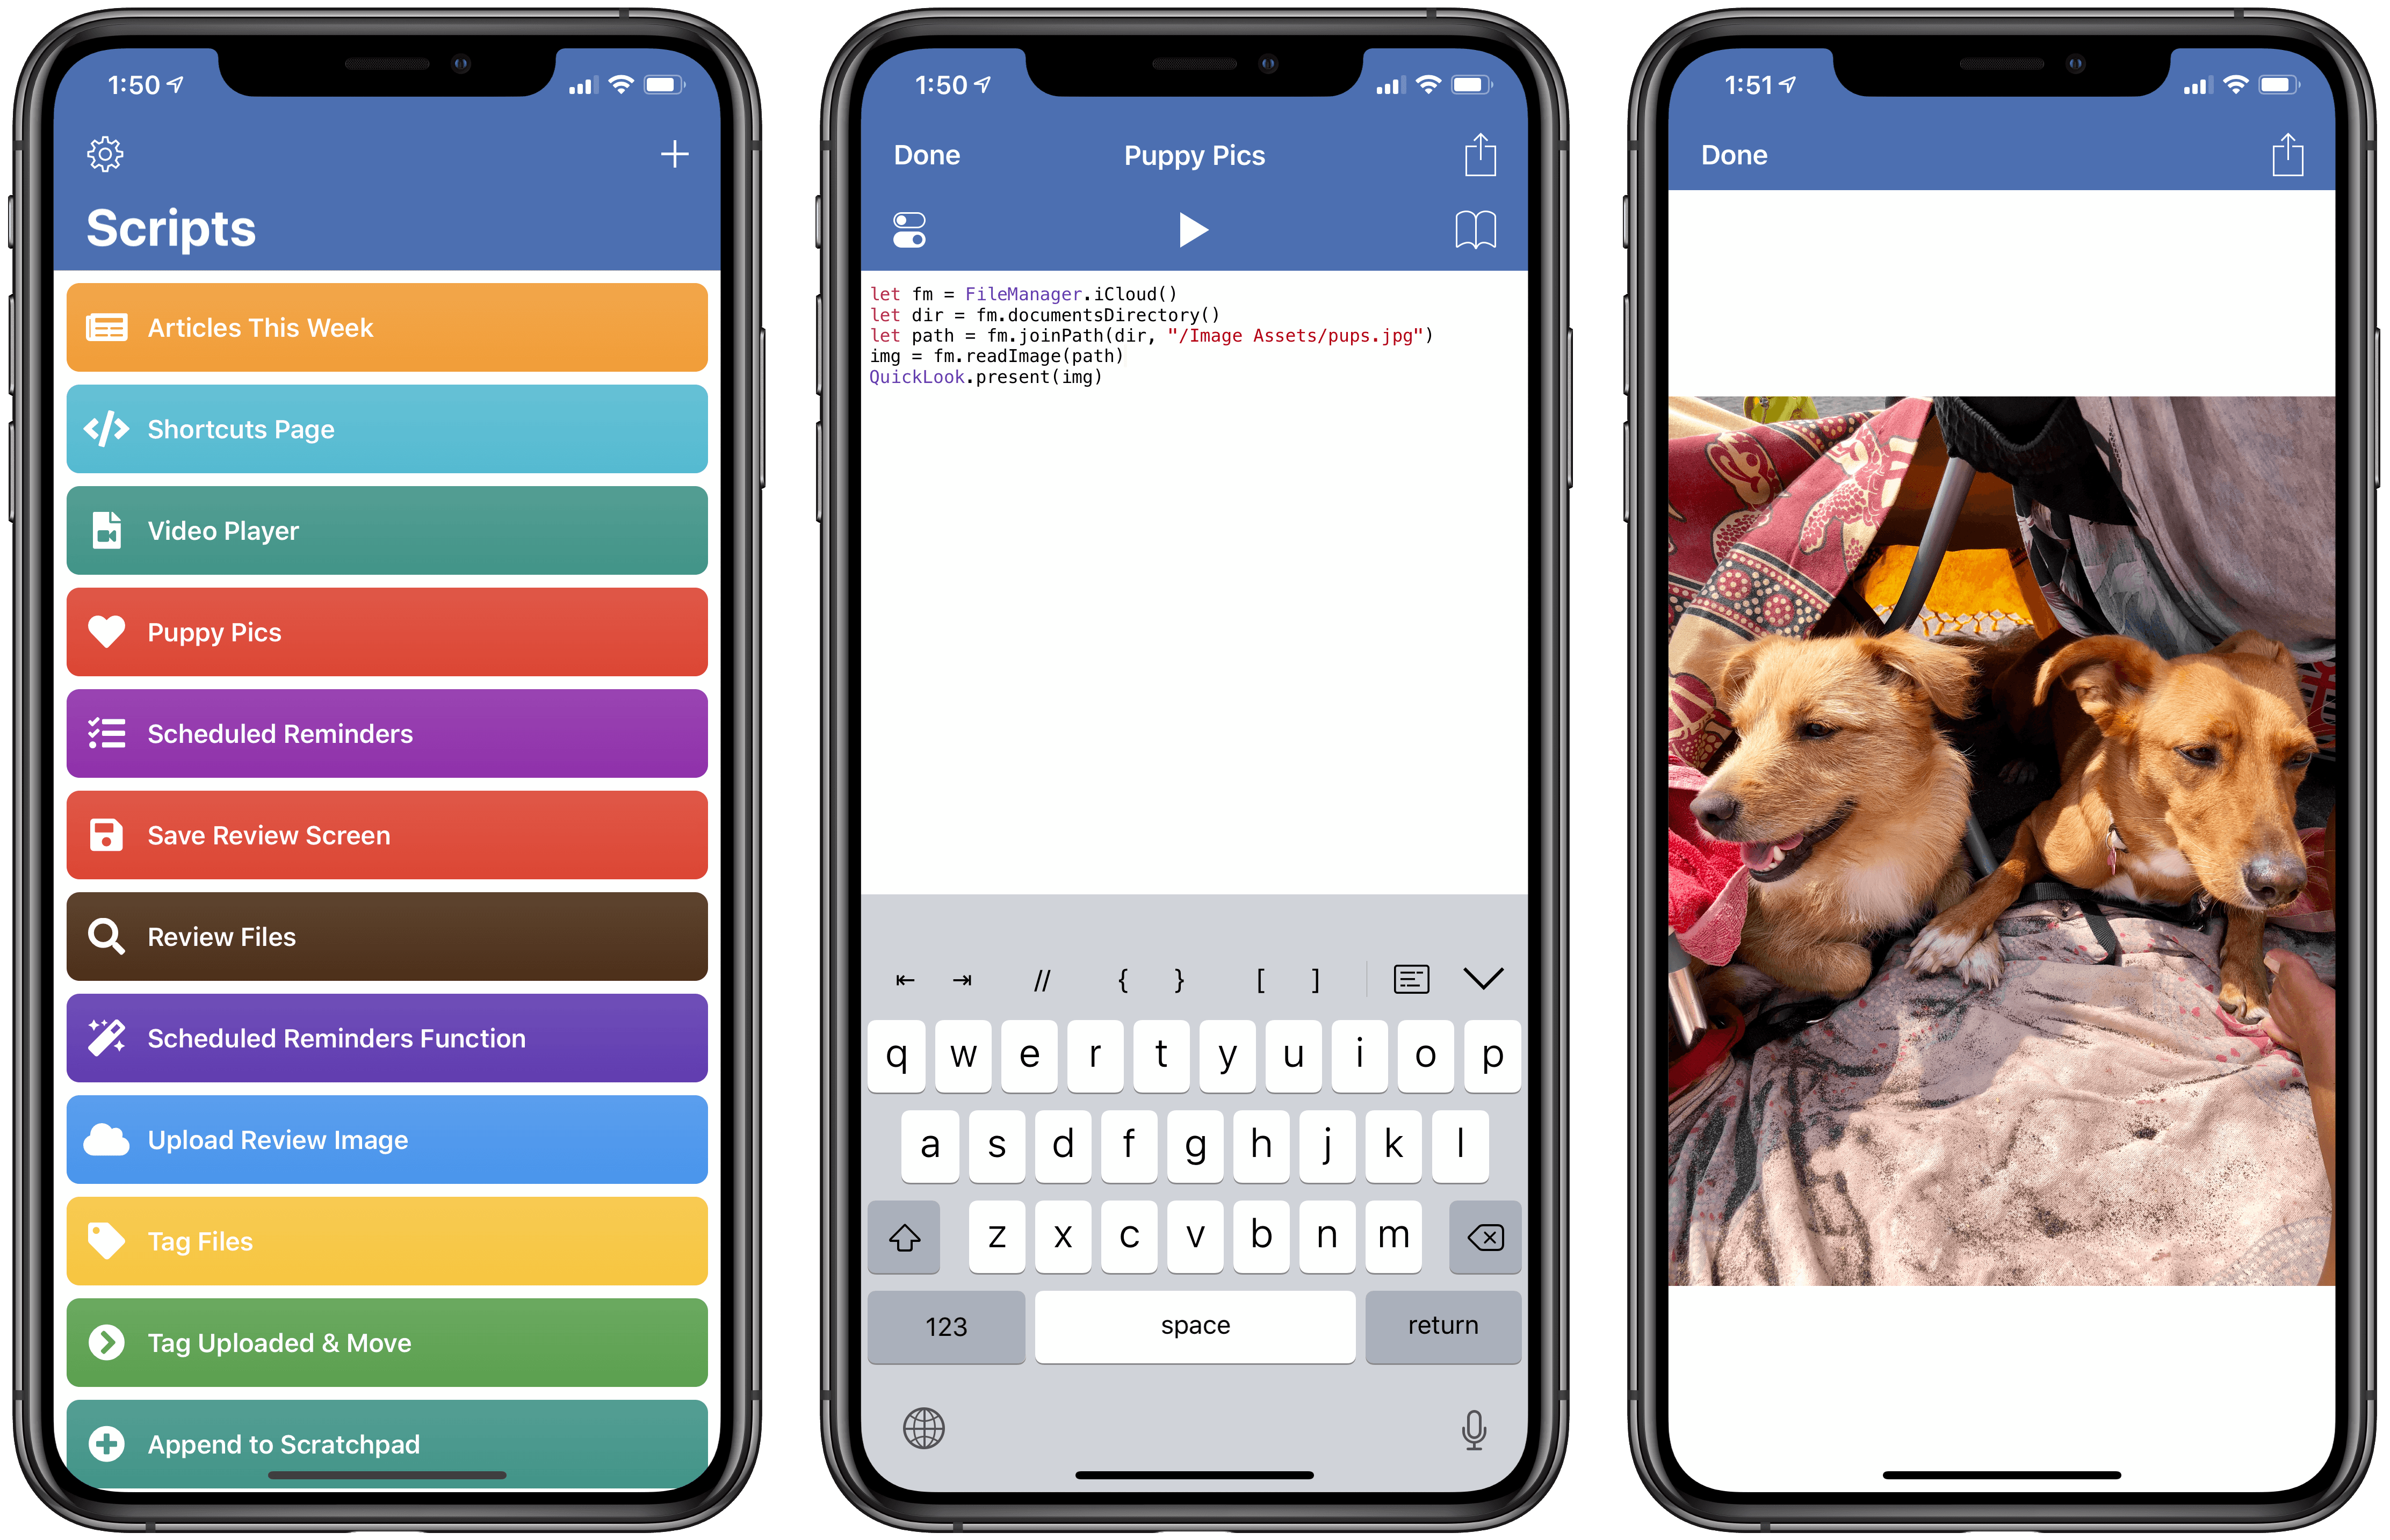 Who wouldn't want to load cute dog pictures with JavaScript?